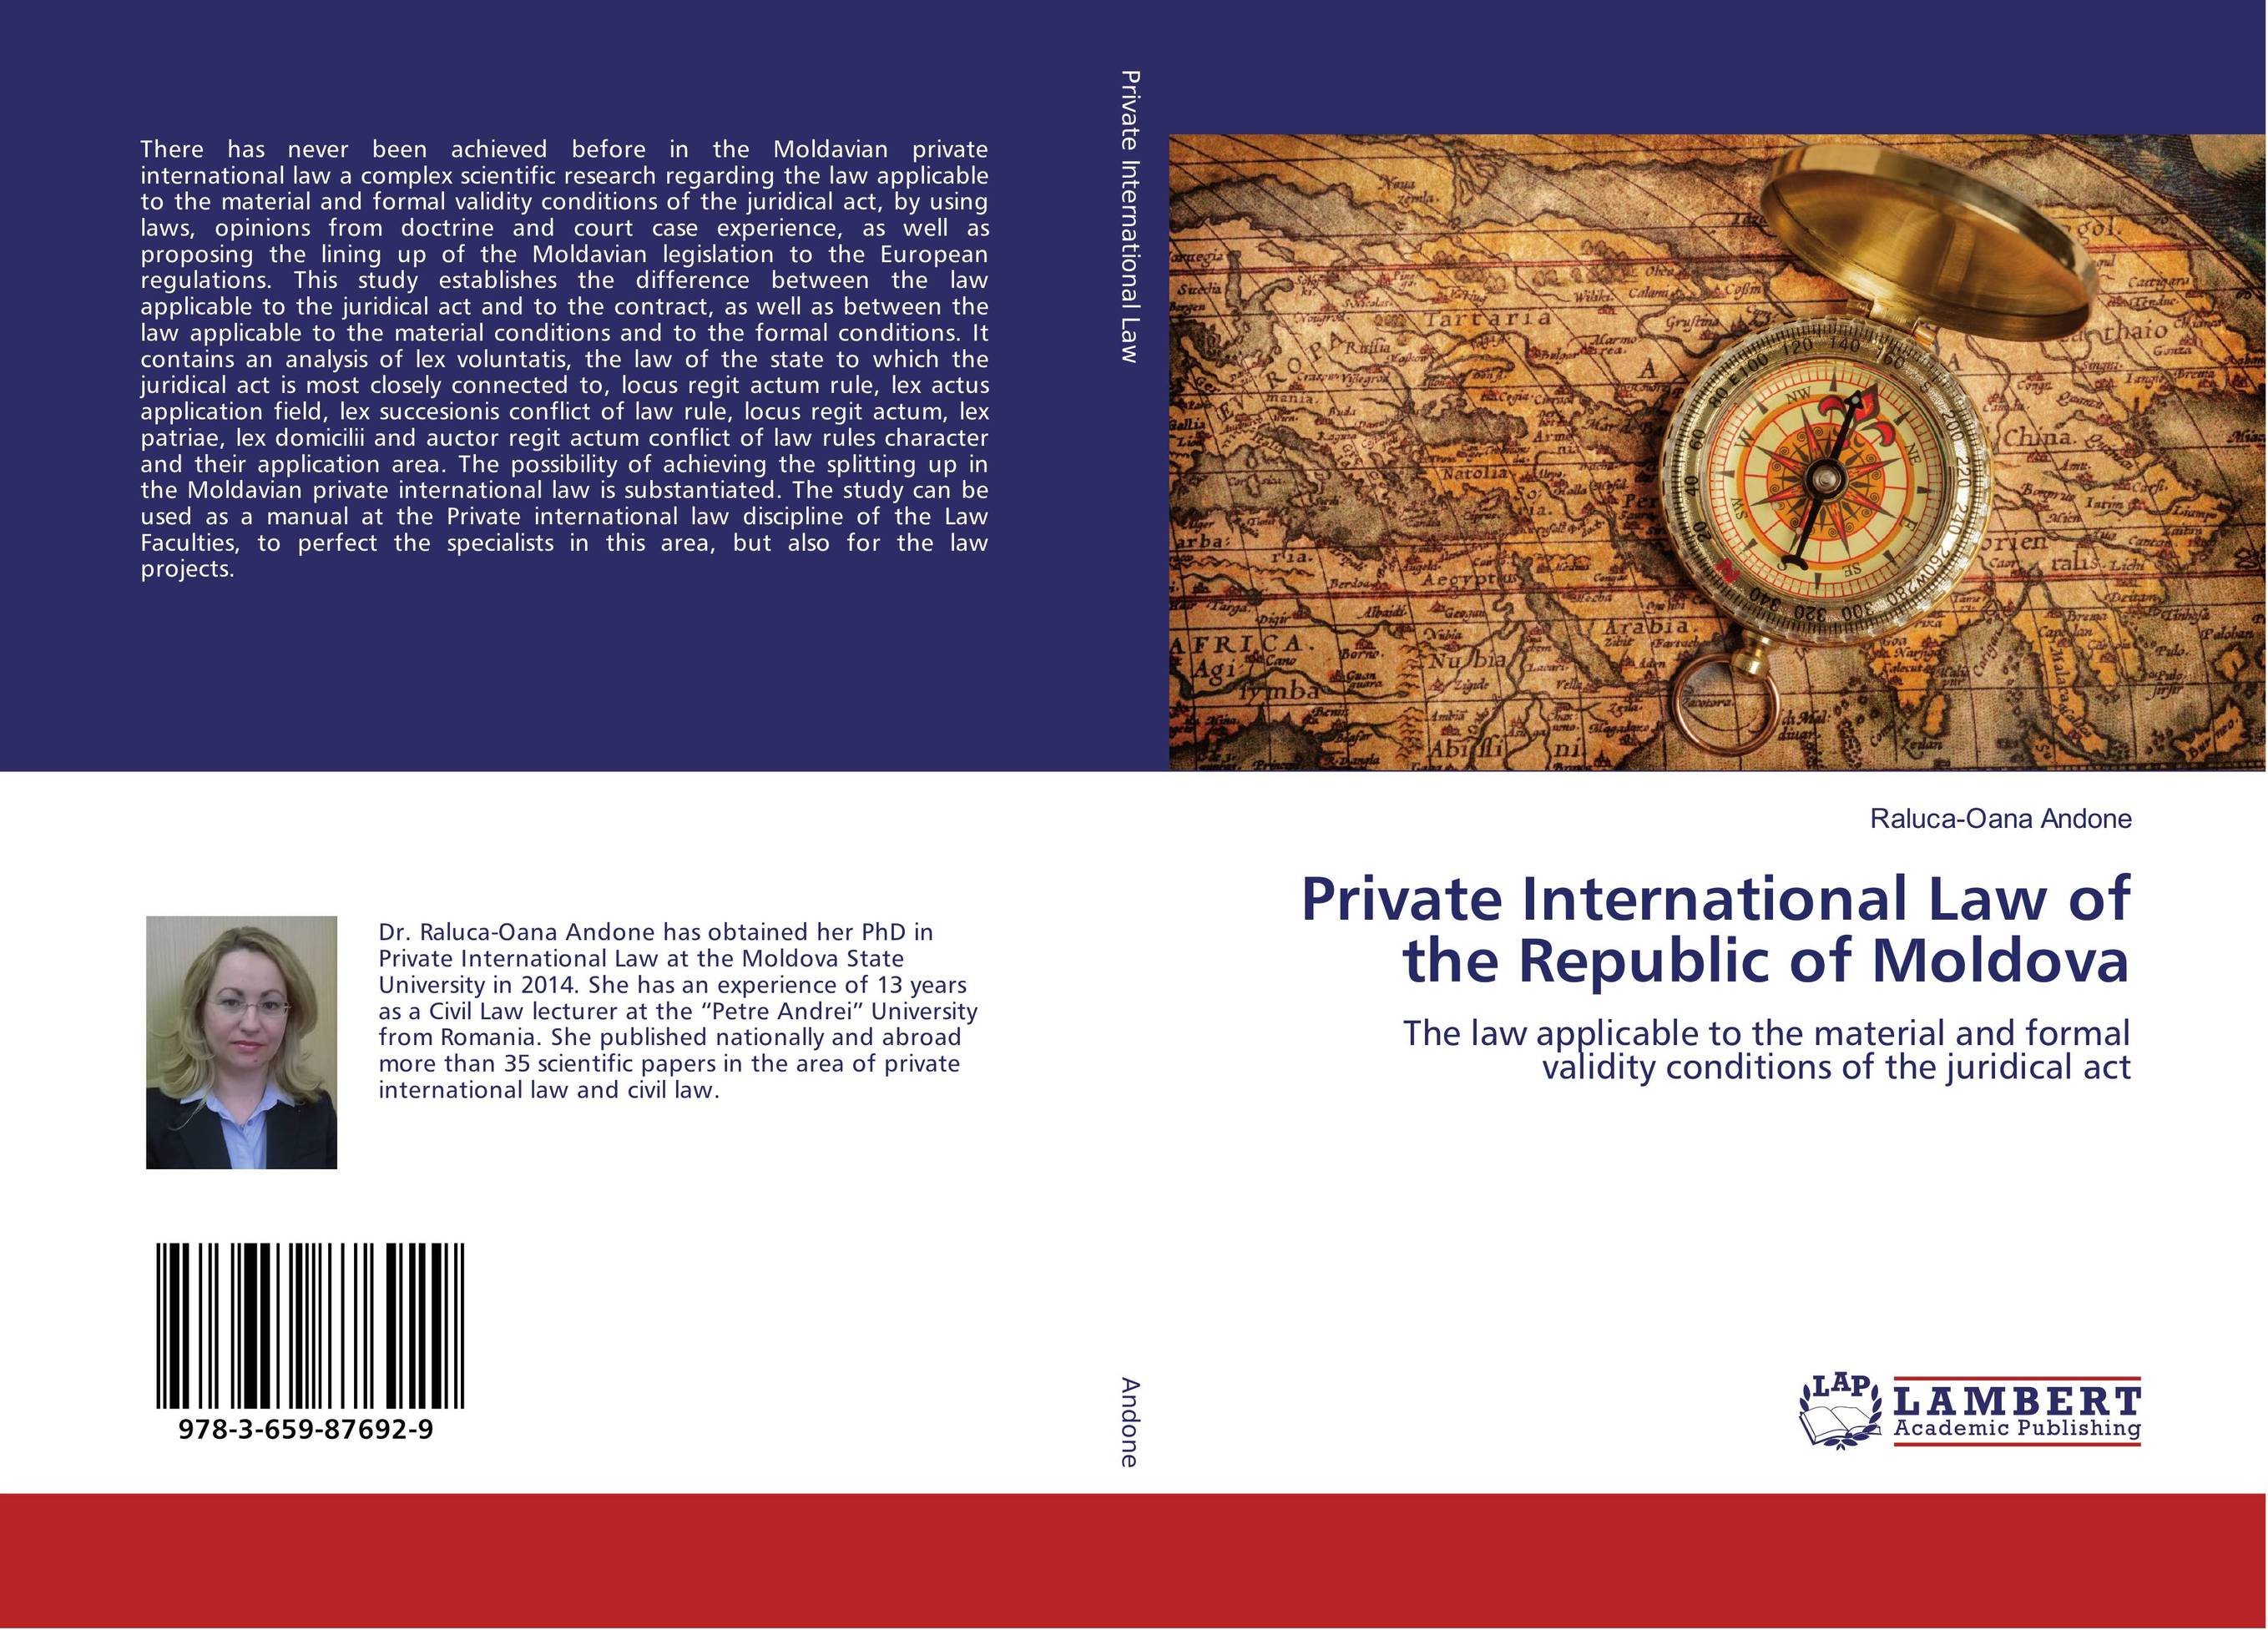 Private International Law of the Republic of Moldova